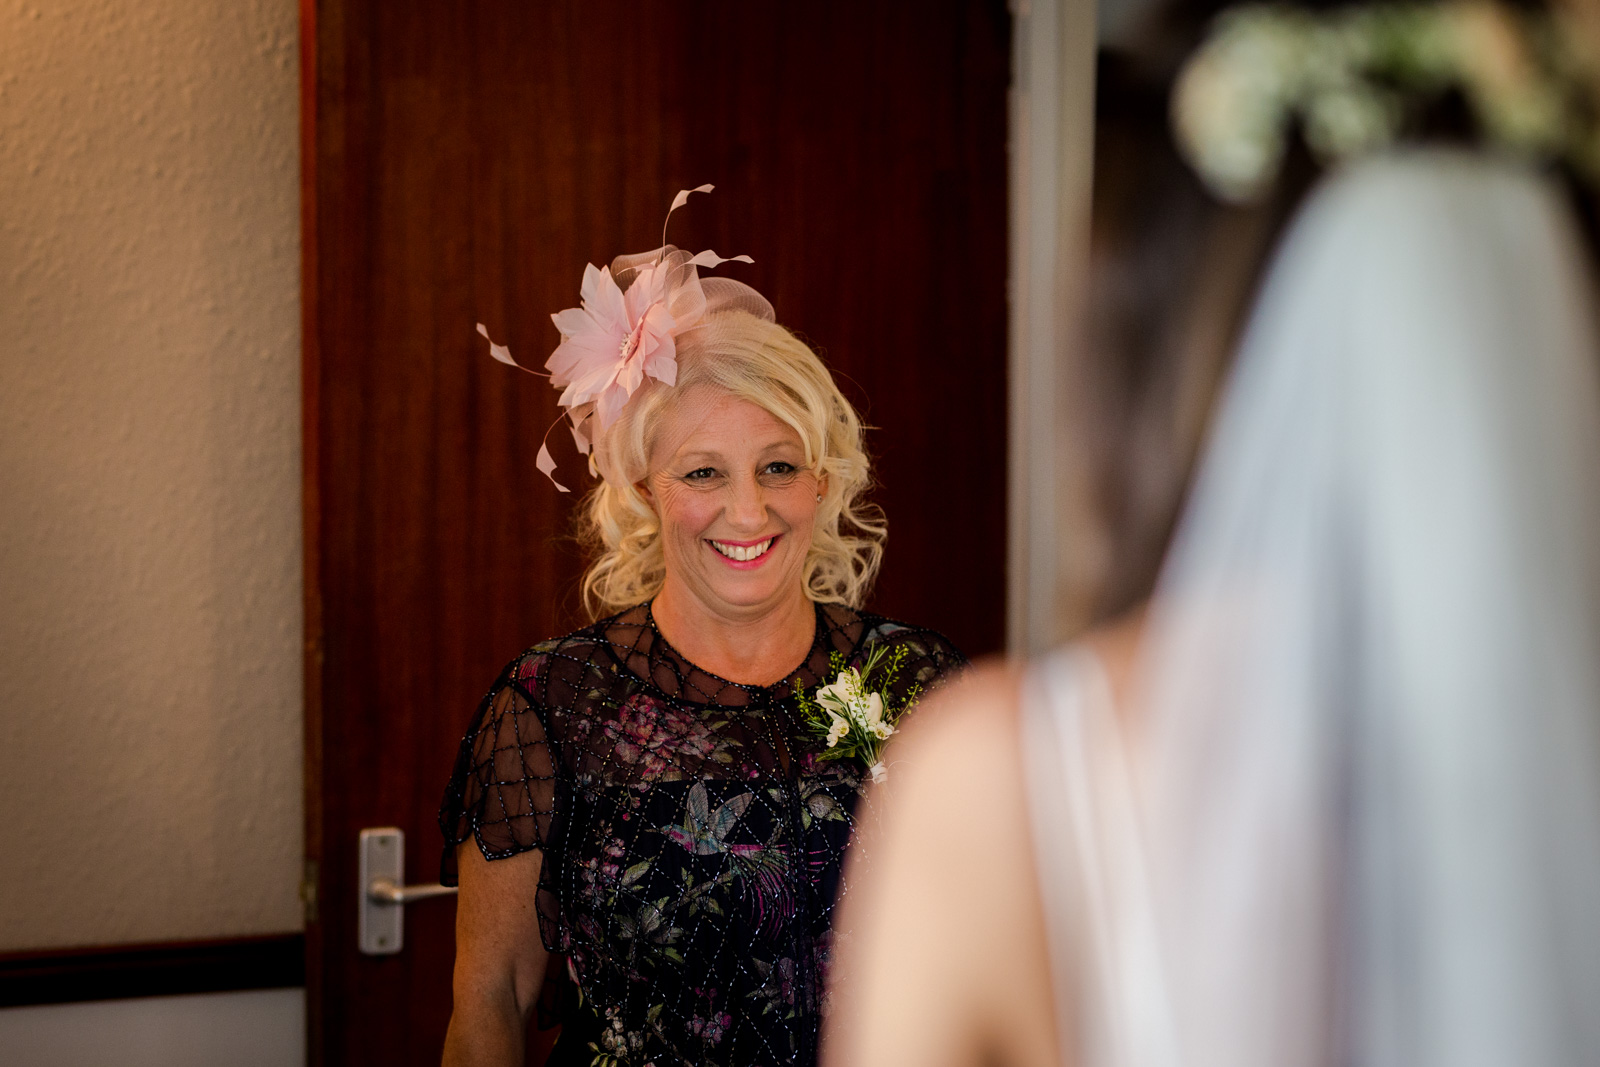 Rookery Farm Wedding in Bedfordshire